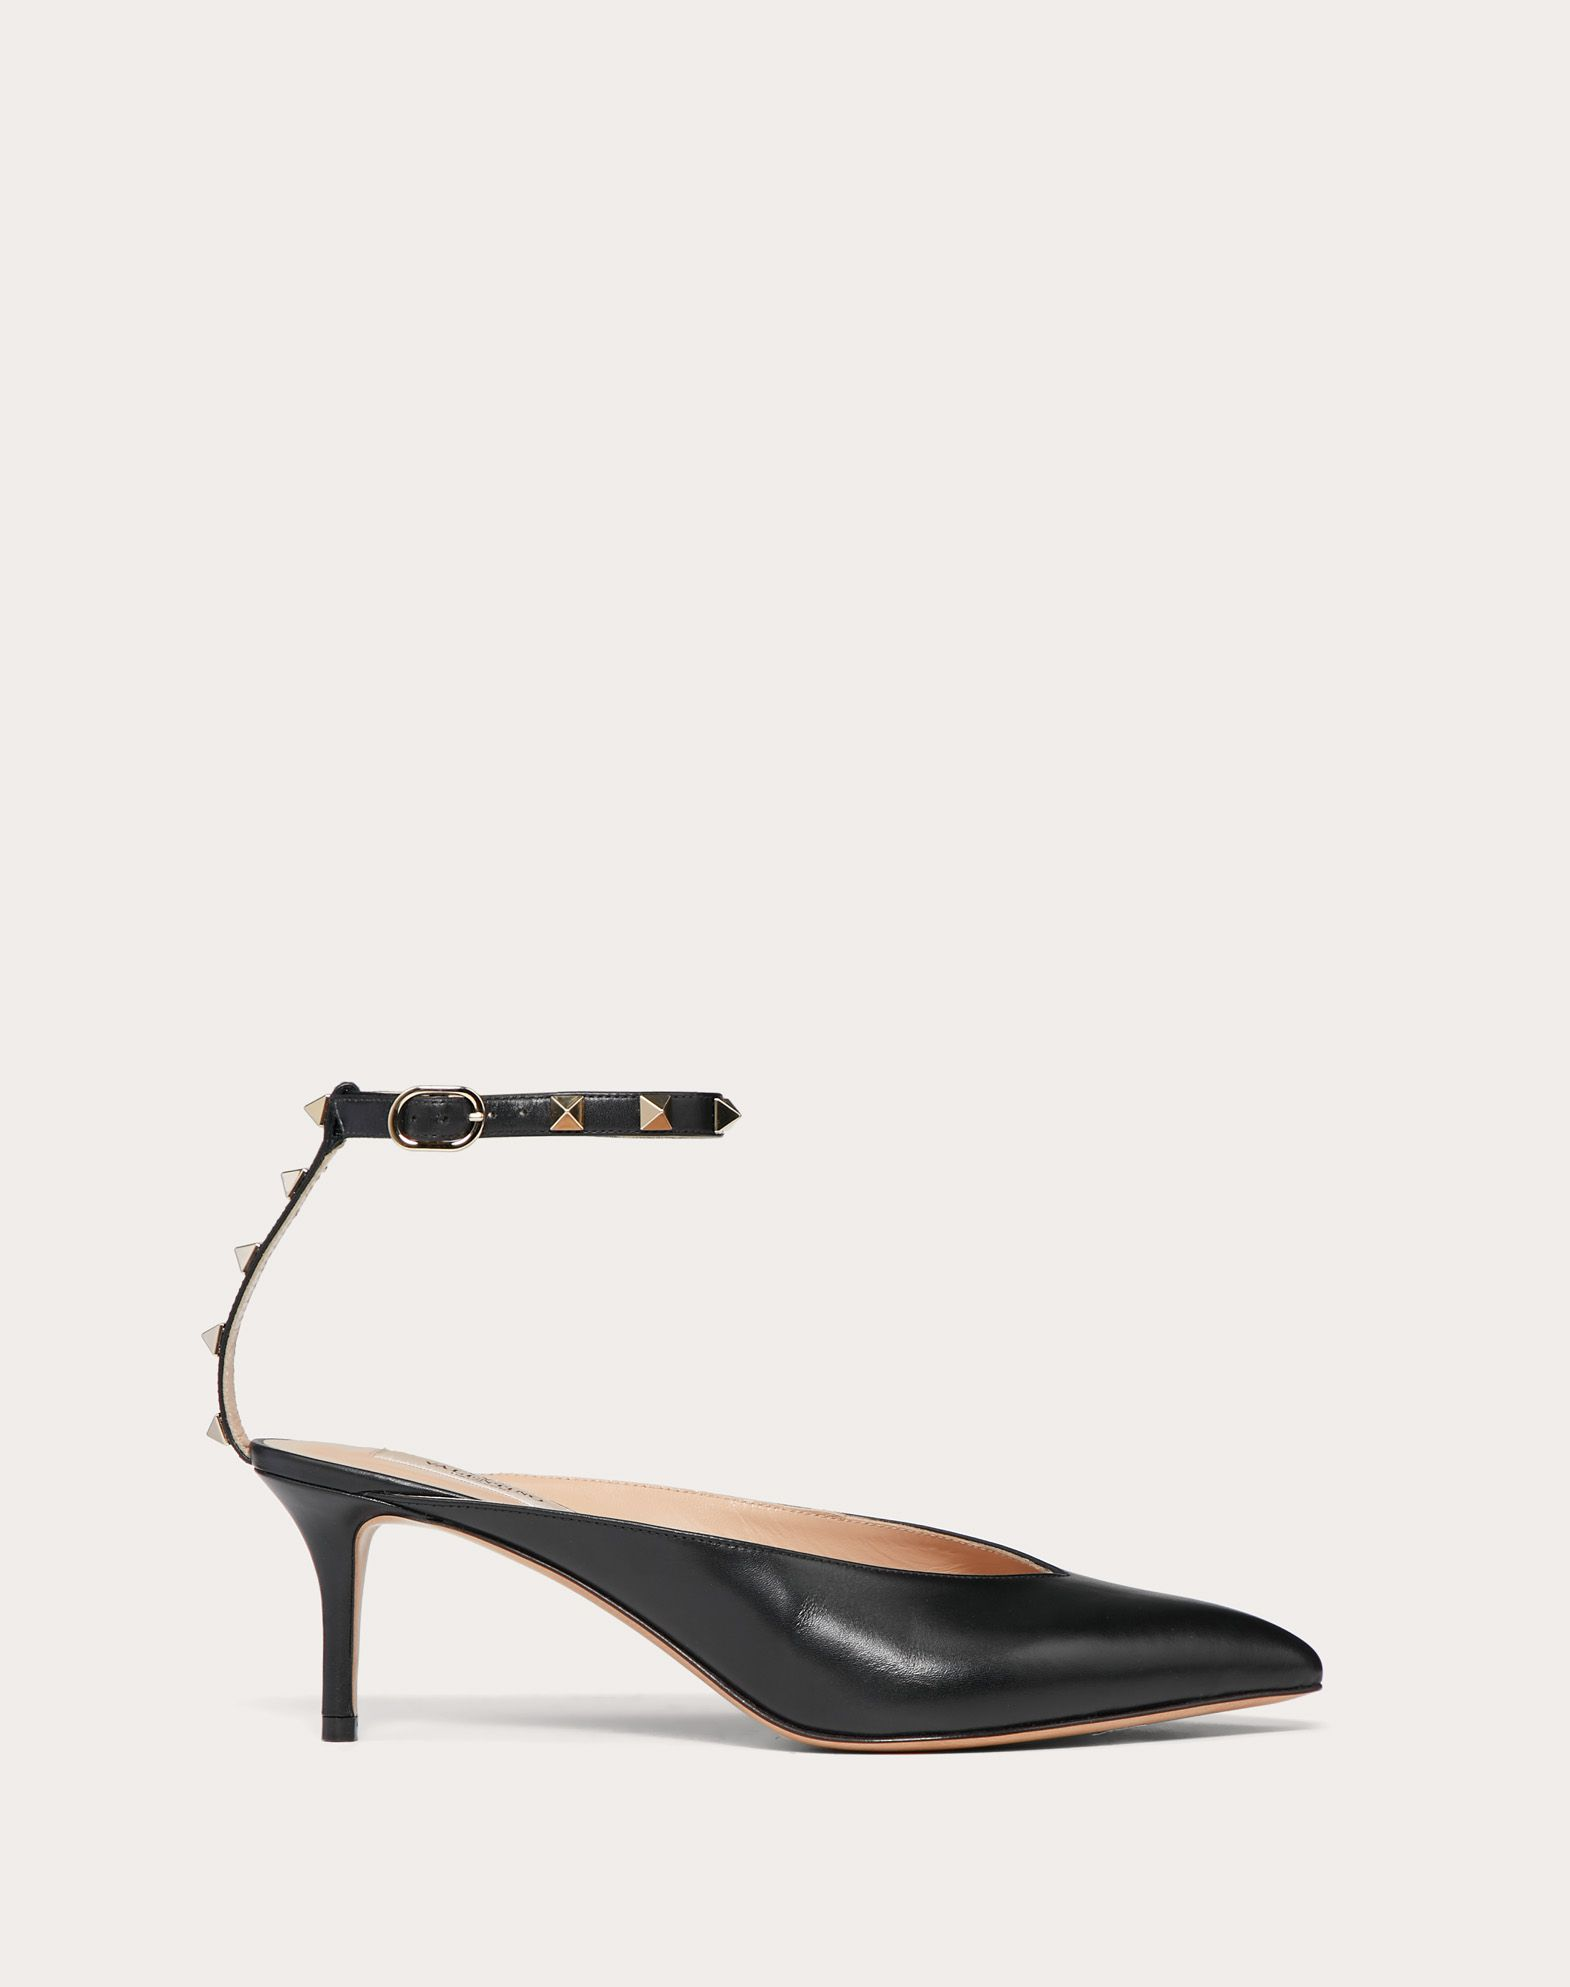 Escarpins Rockstud Hype en veau. Talon : 60 mm